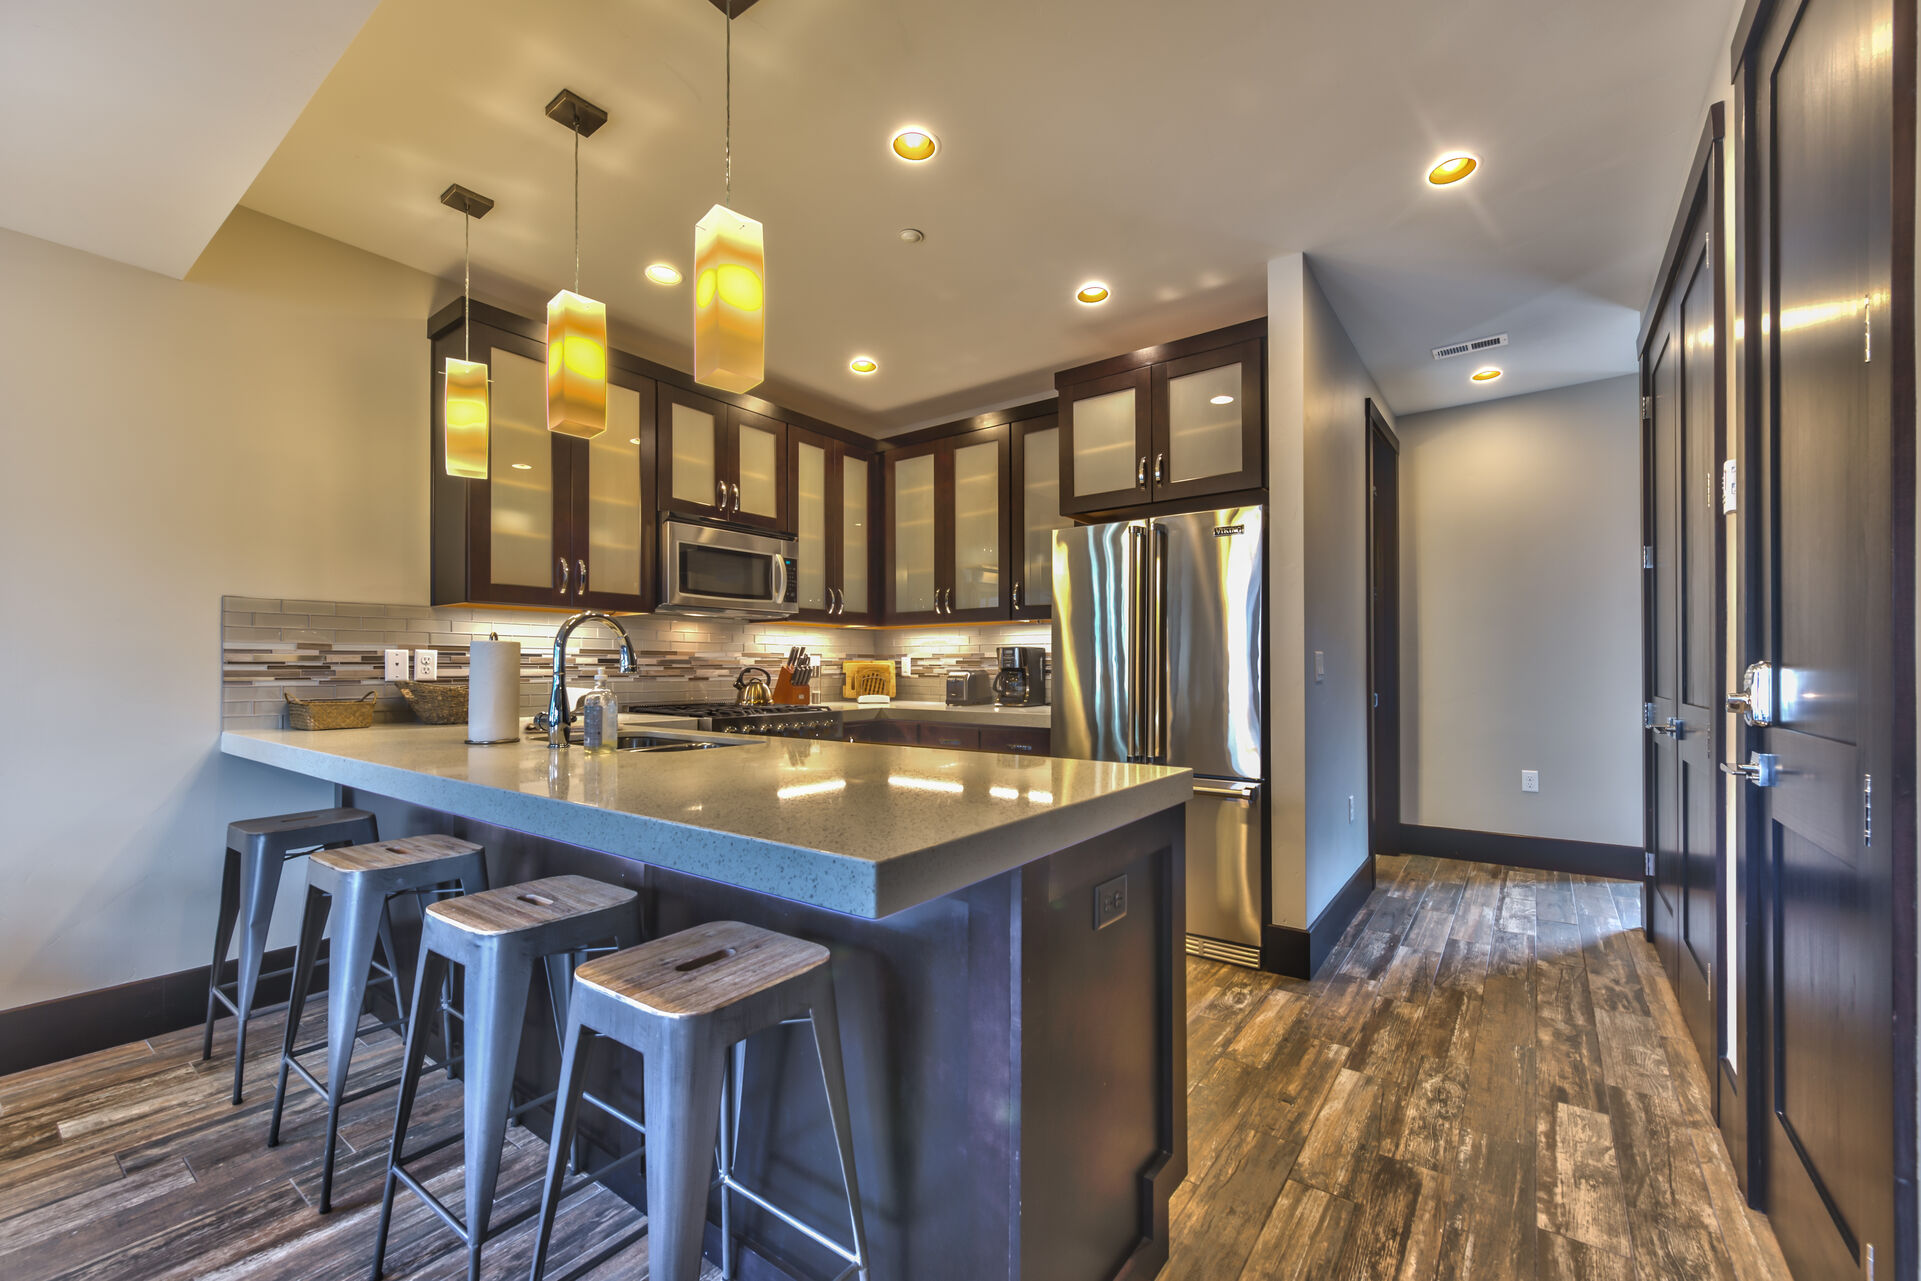 Fully Equipped Kitchen with Stainless Steel Appliances, a 6-Burner Viking Gas Range, Granite Countertops, Bar Seating for 4, and adjoining Dining Area